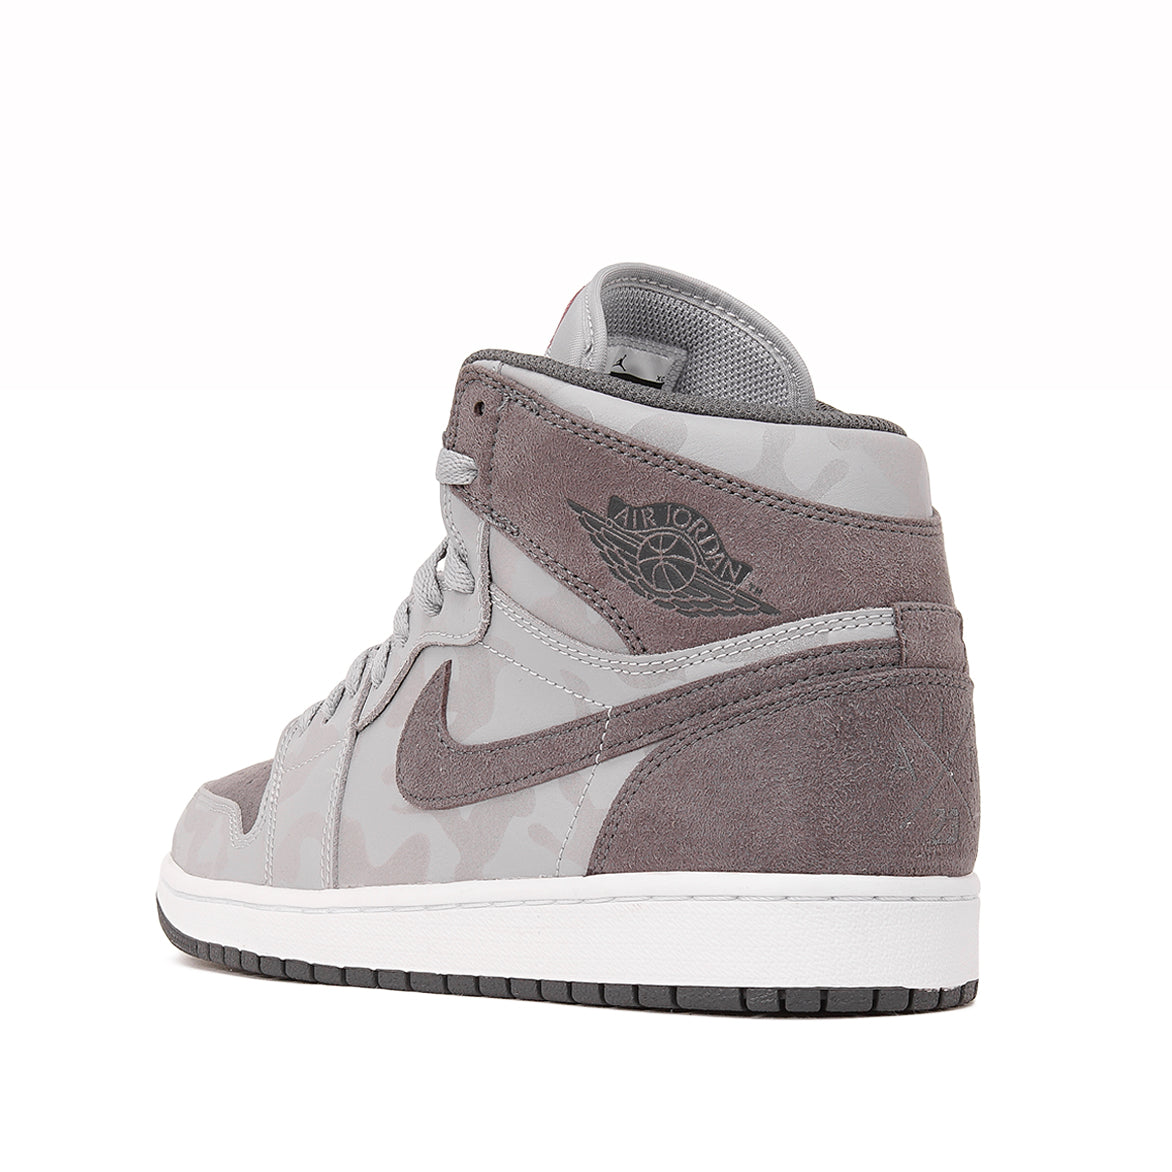 "AIR JORDAN 1 RETRO HIGH PREMIUM ""WOLF GREY CAMO"""